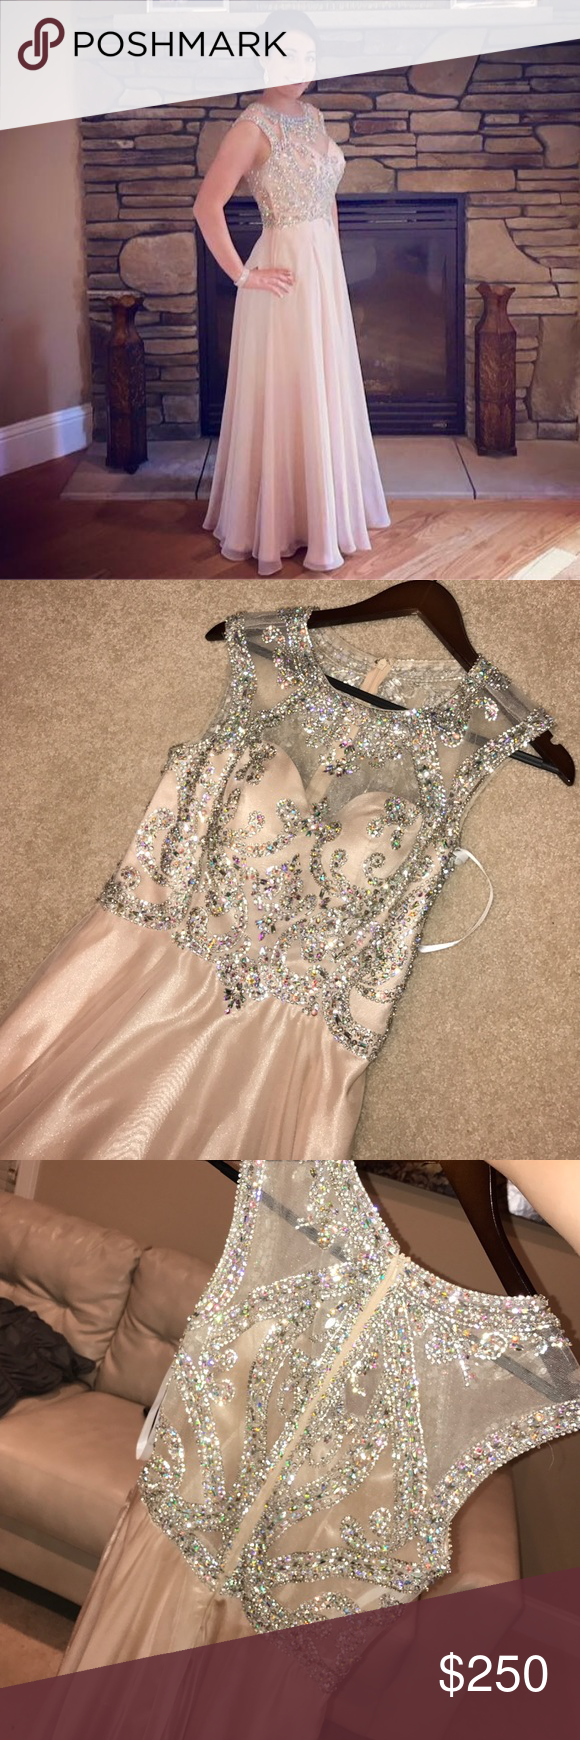 Jovani prom dress size jovani prom dress worn to a junior prom